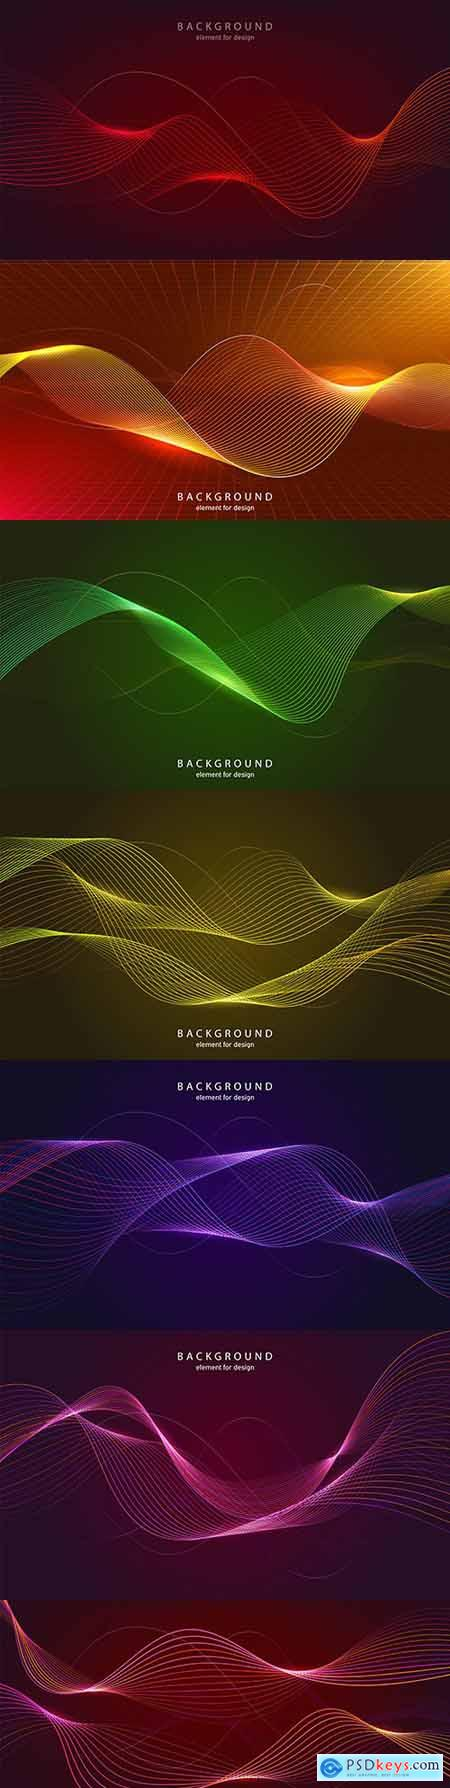 Background abstract design blend line and luminous effect